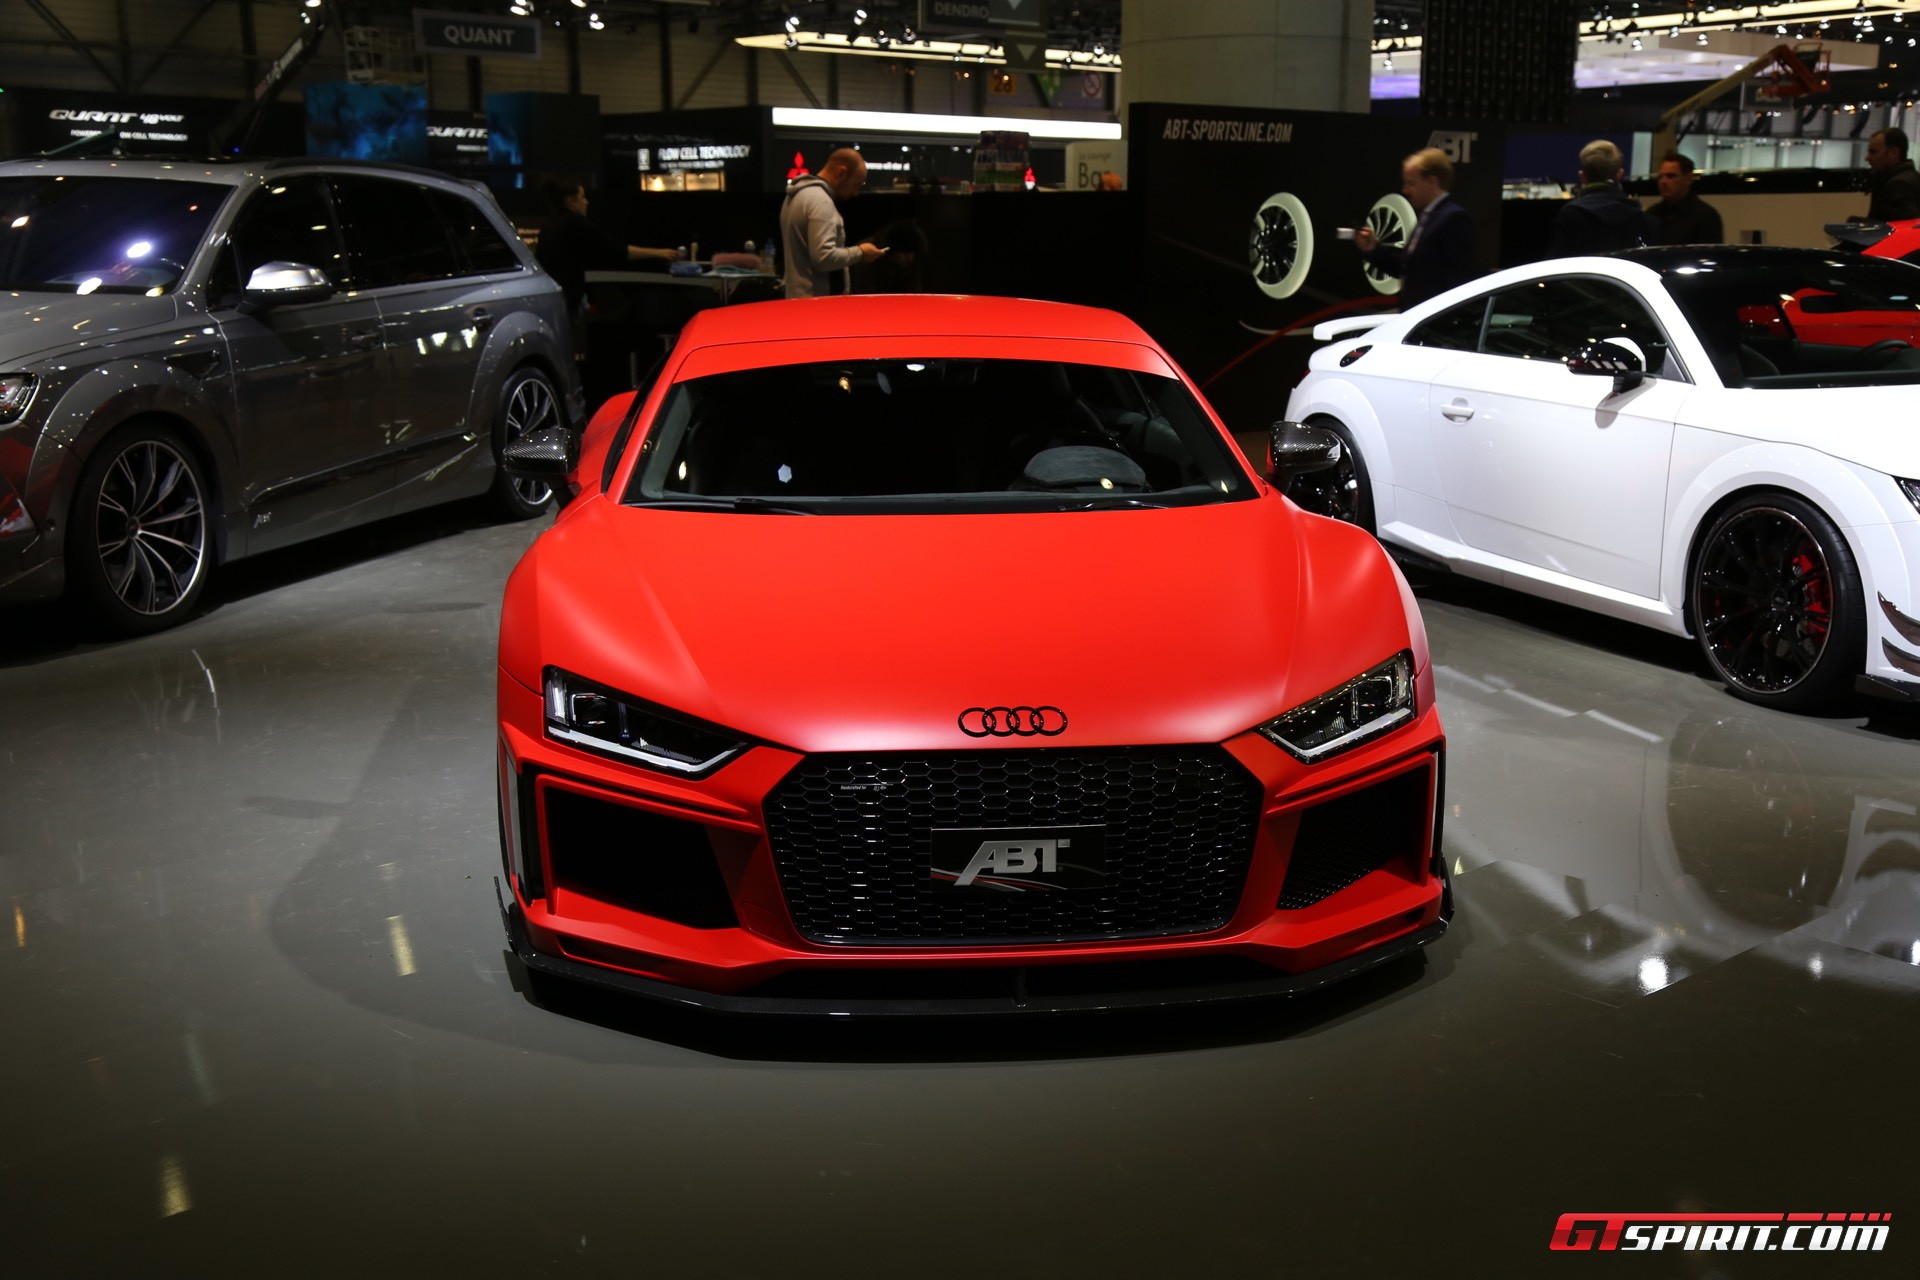 ABT Audi R8 V10 at Geneva